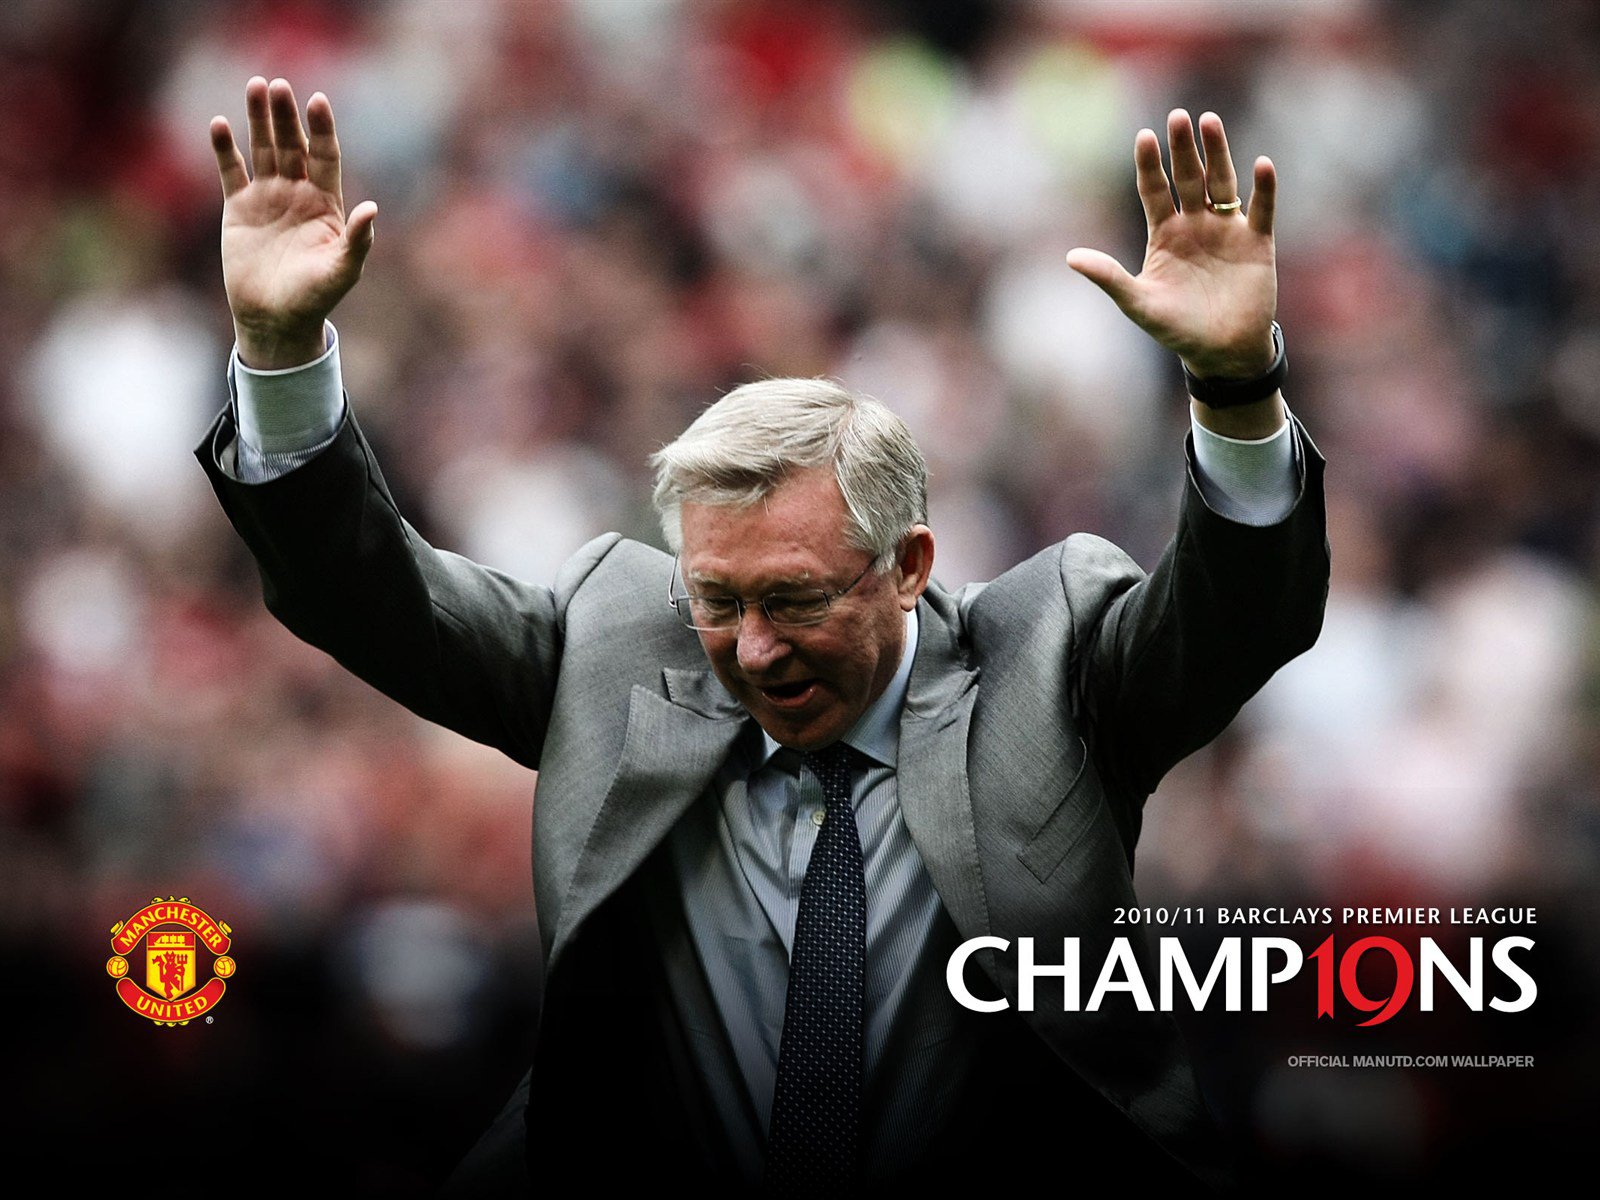 Wallpaper Manchester United Terbaru 2011 Topnewsgermany